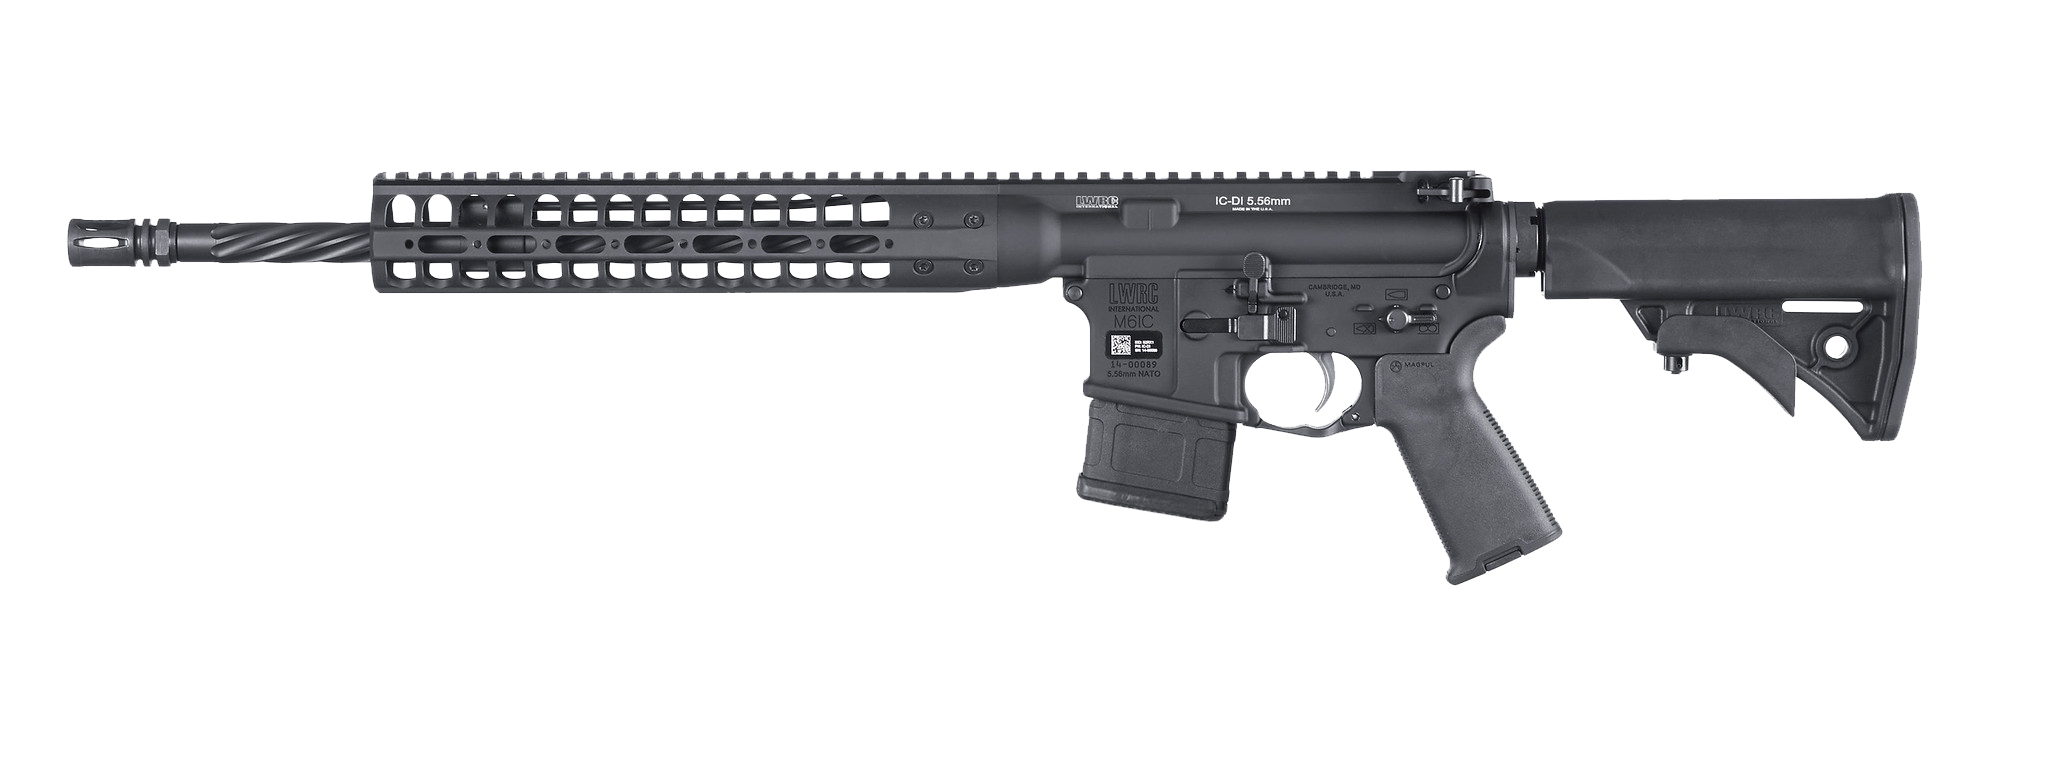 LWRC IC-DI California Compliant 223 Rem | 5.56 NATO